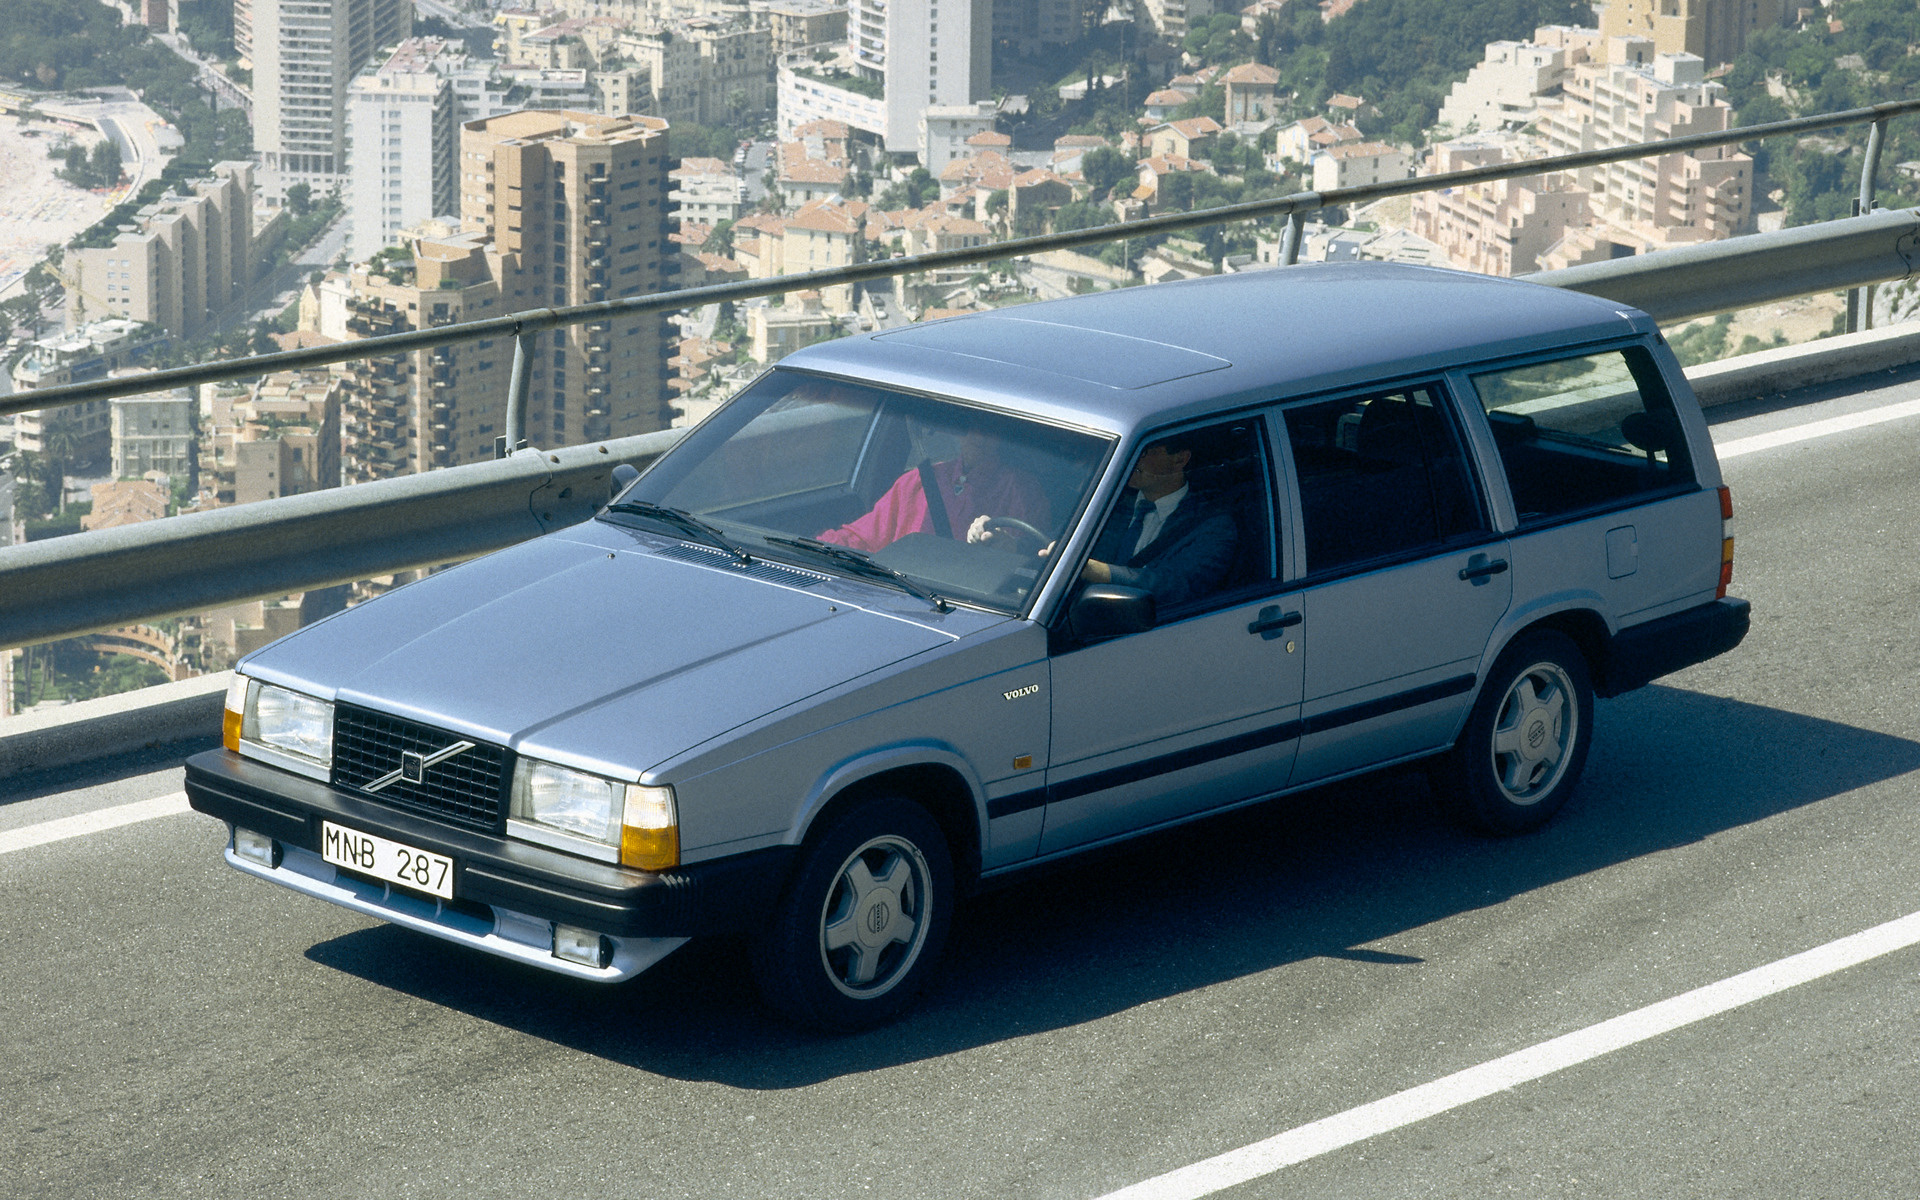 Volvo 740 Turbo Kombi (1985) Wallpapers and HD Images - Car Pixel